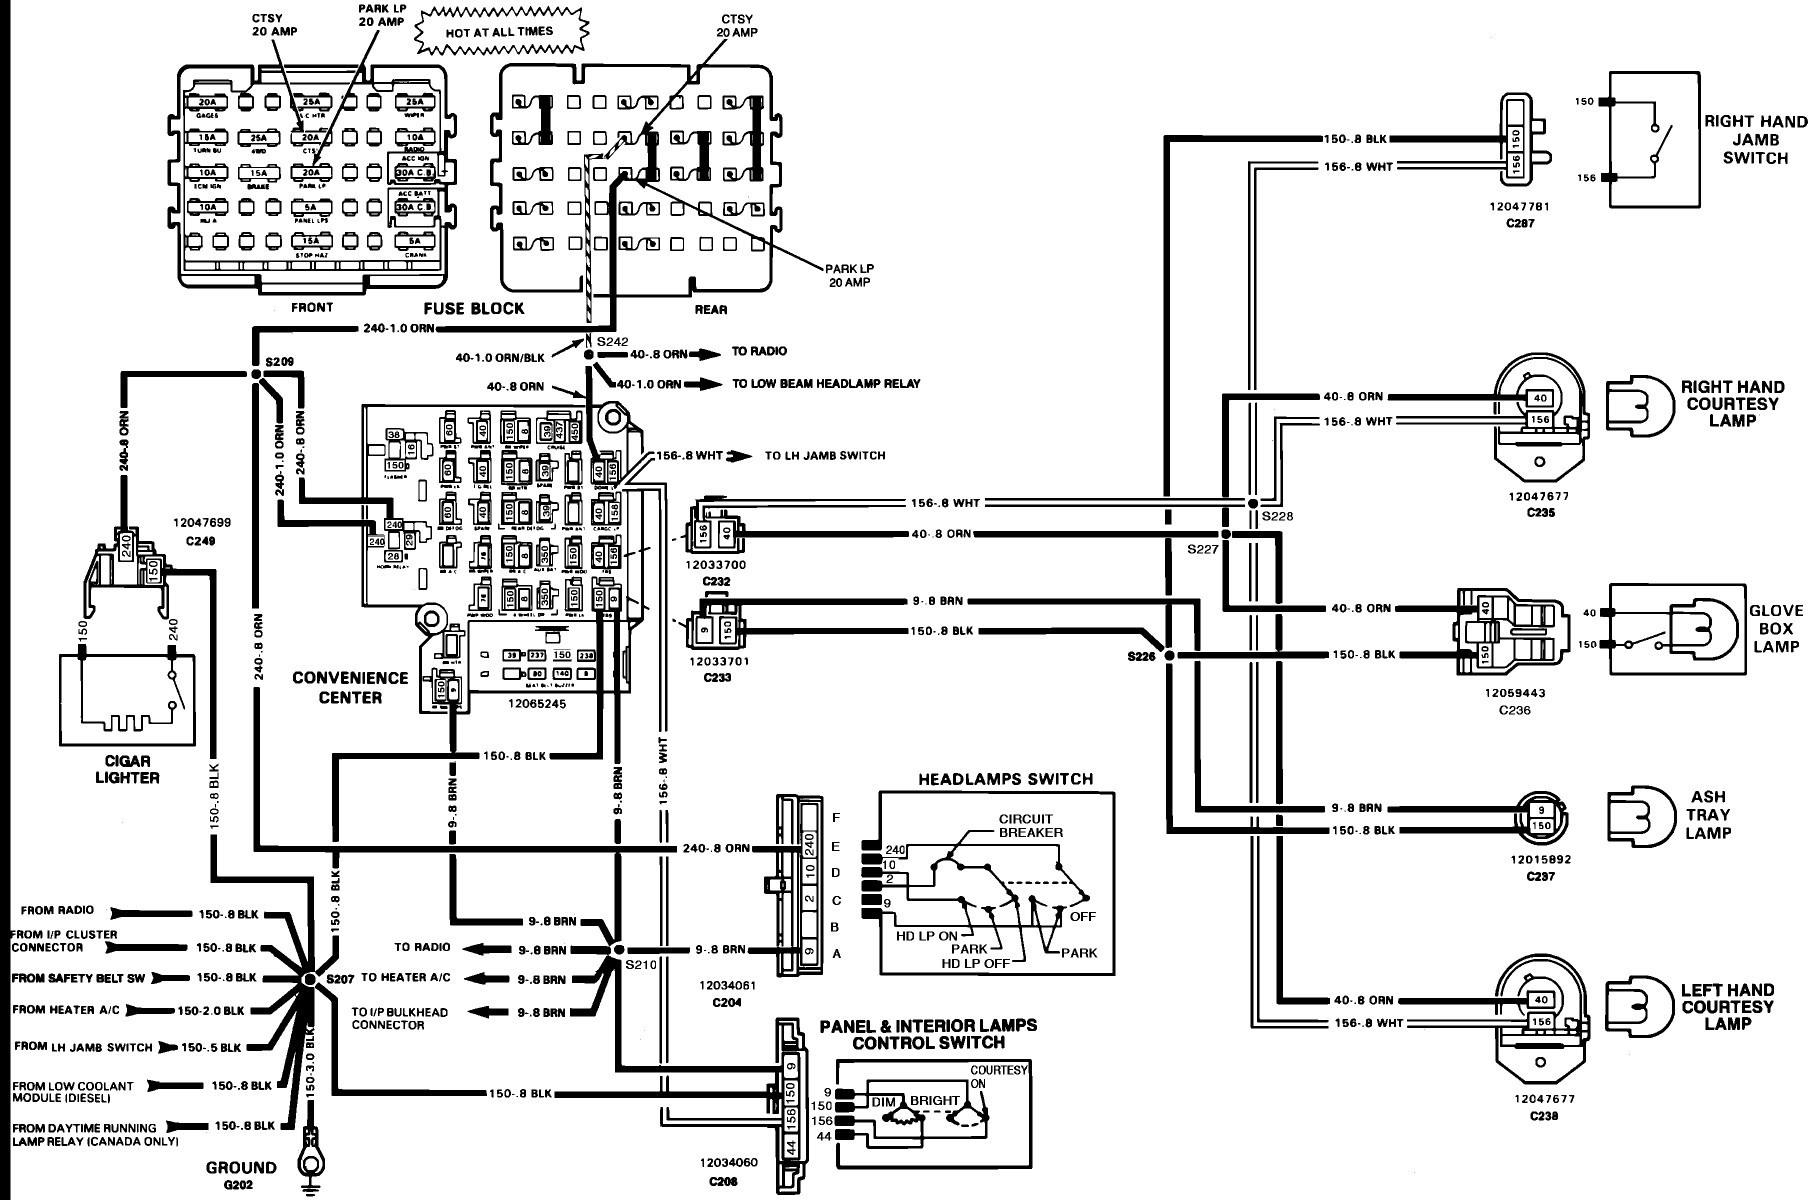 91 Chevy Truck Tail Light Wiring Diagram | Manual E-Books - Tail Light Wiring Diagram Chevy